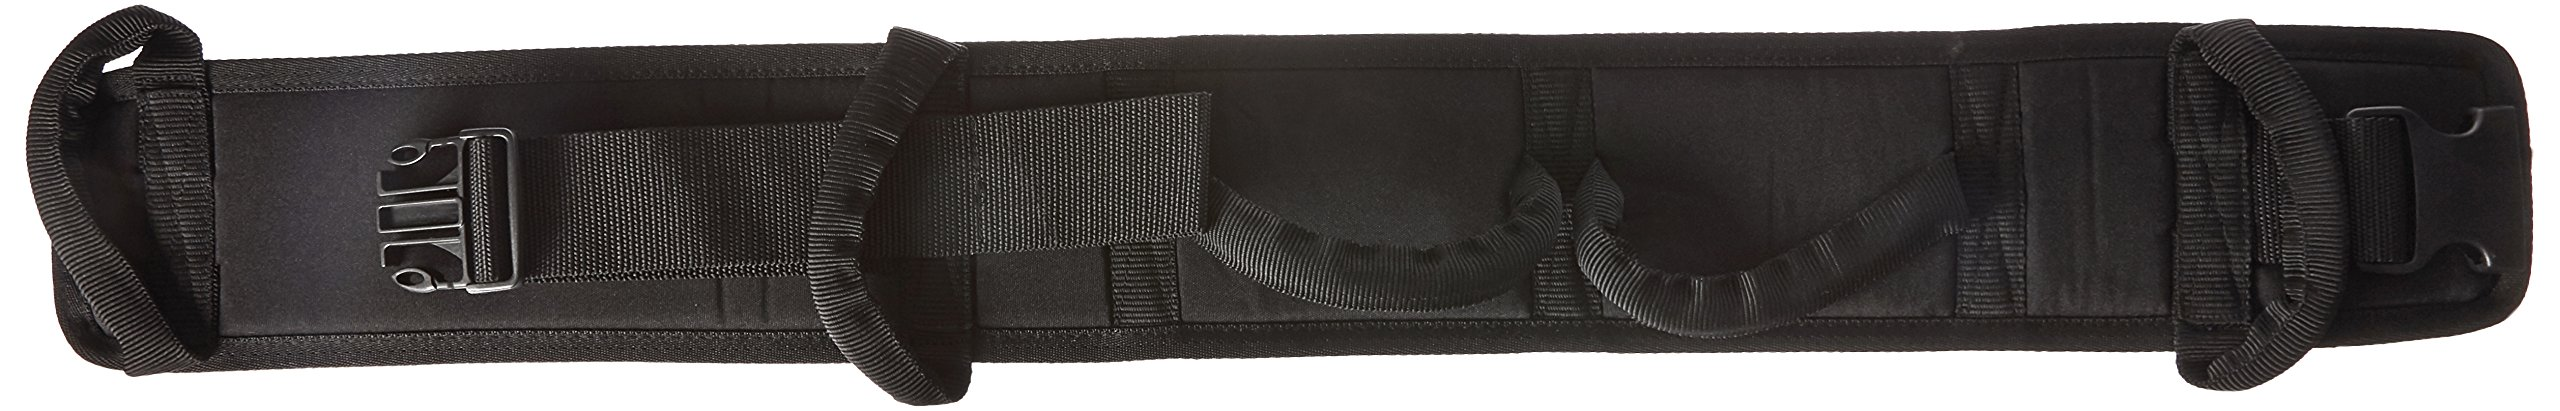 MTS Medical Supply 6033 Safety sure Transfer Belt, Small